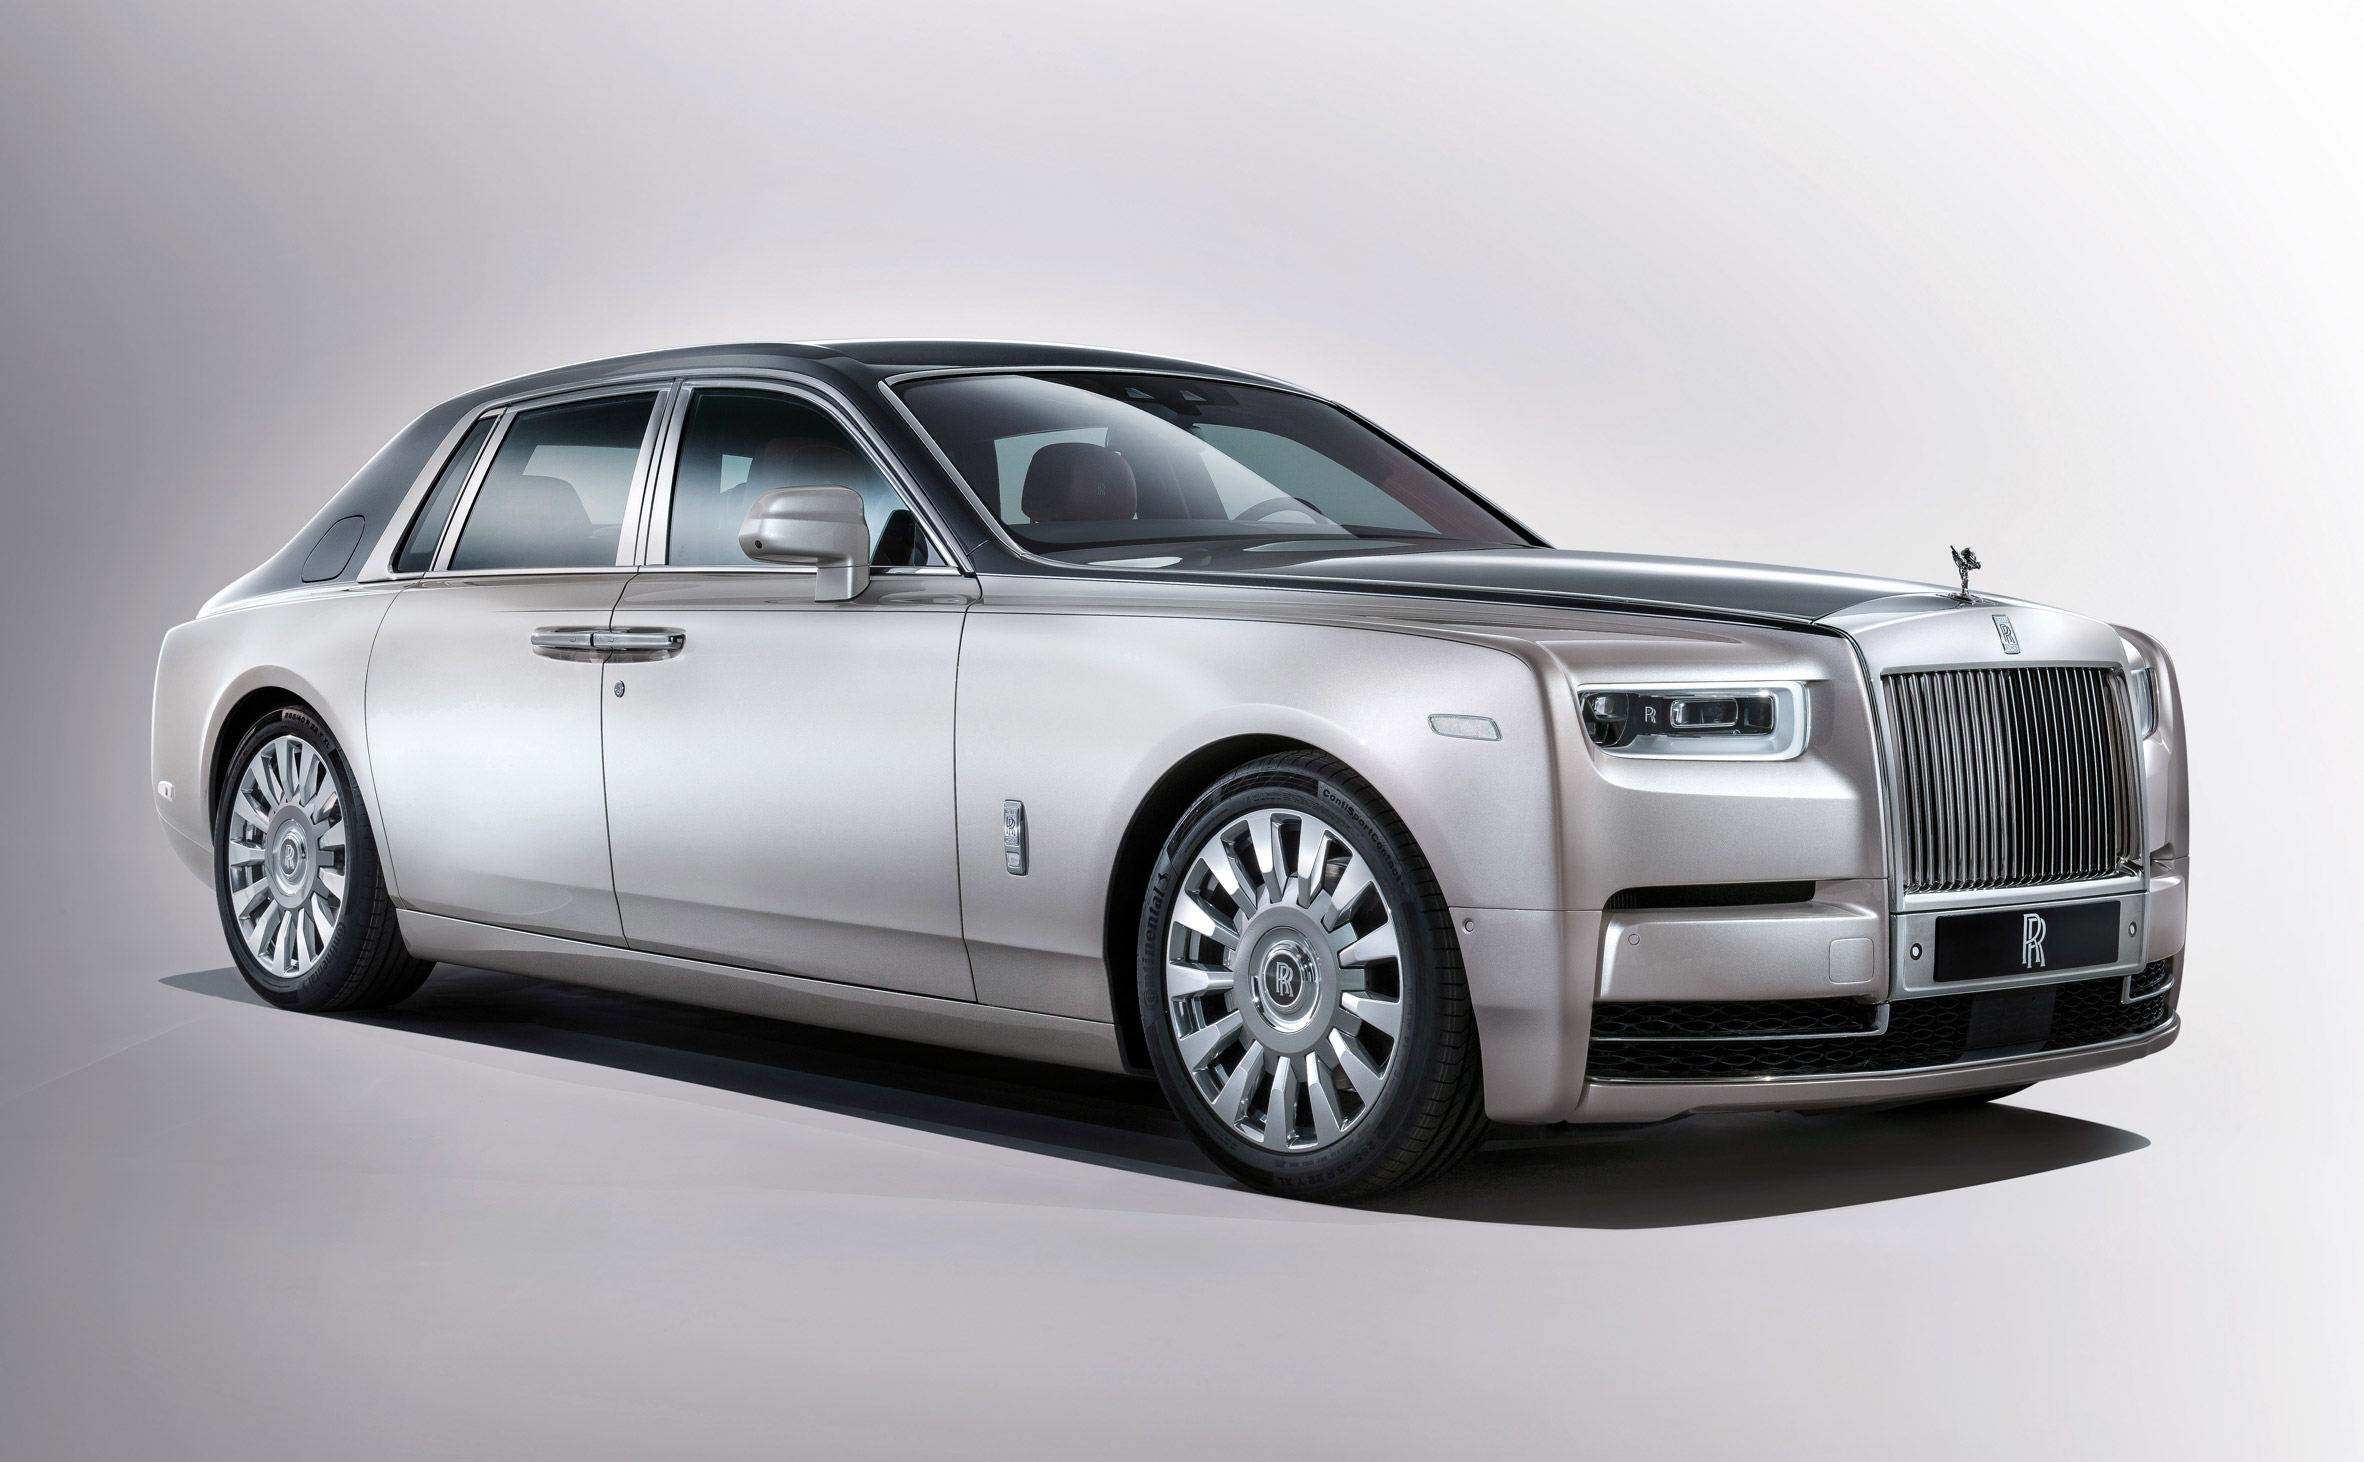 dc design rolls royce in london designer dc ... Rolls-Royce unveils new Phantom car ...